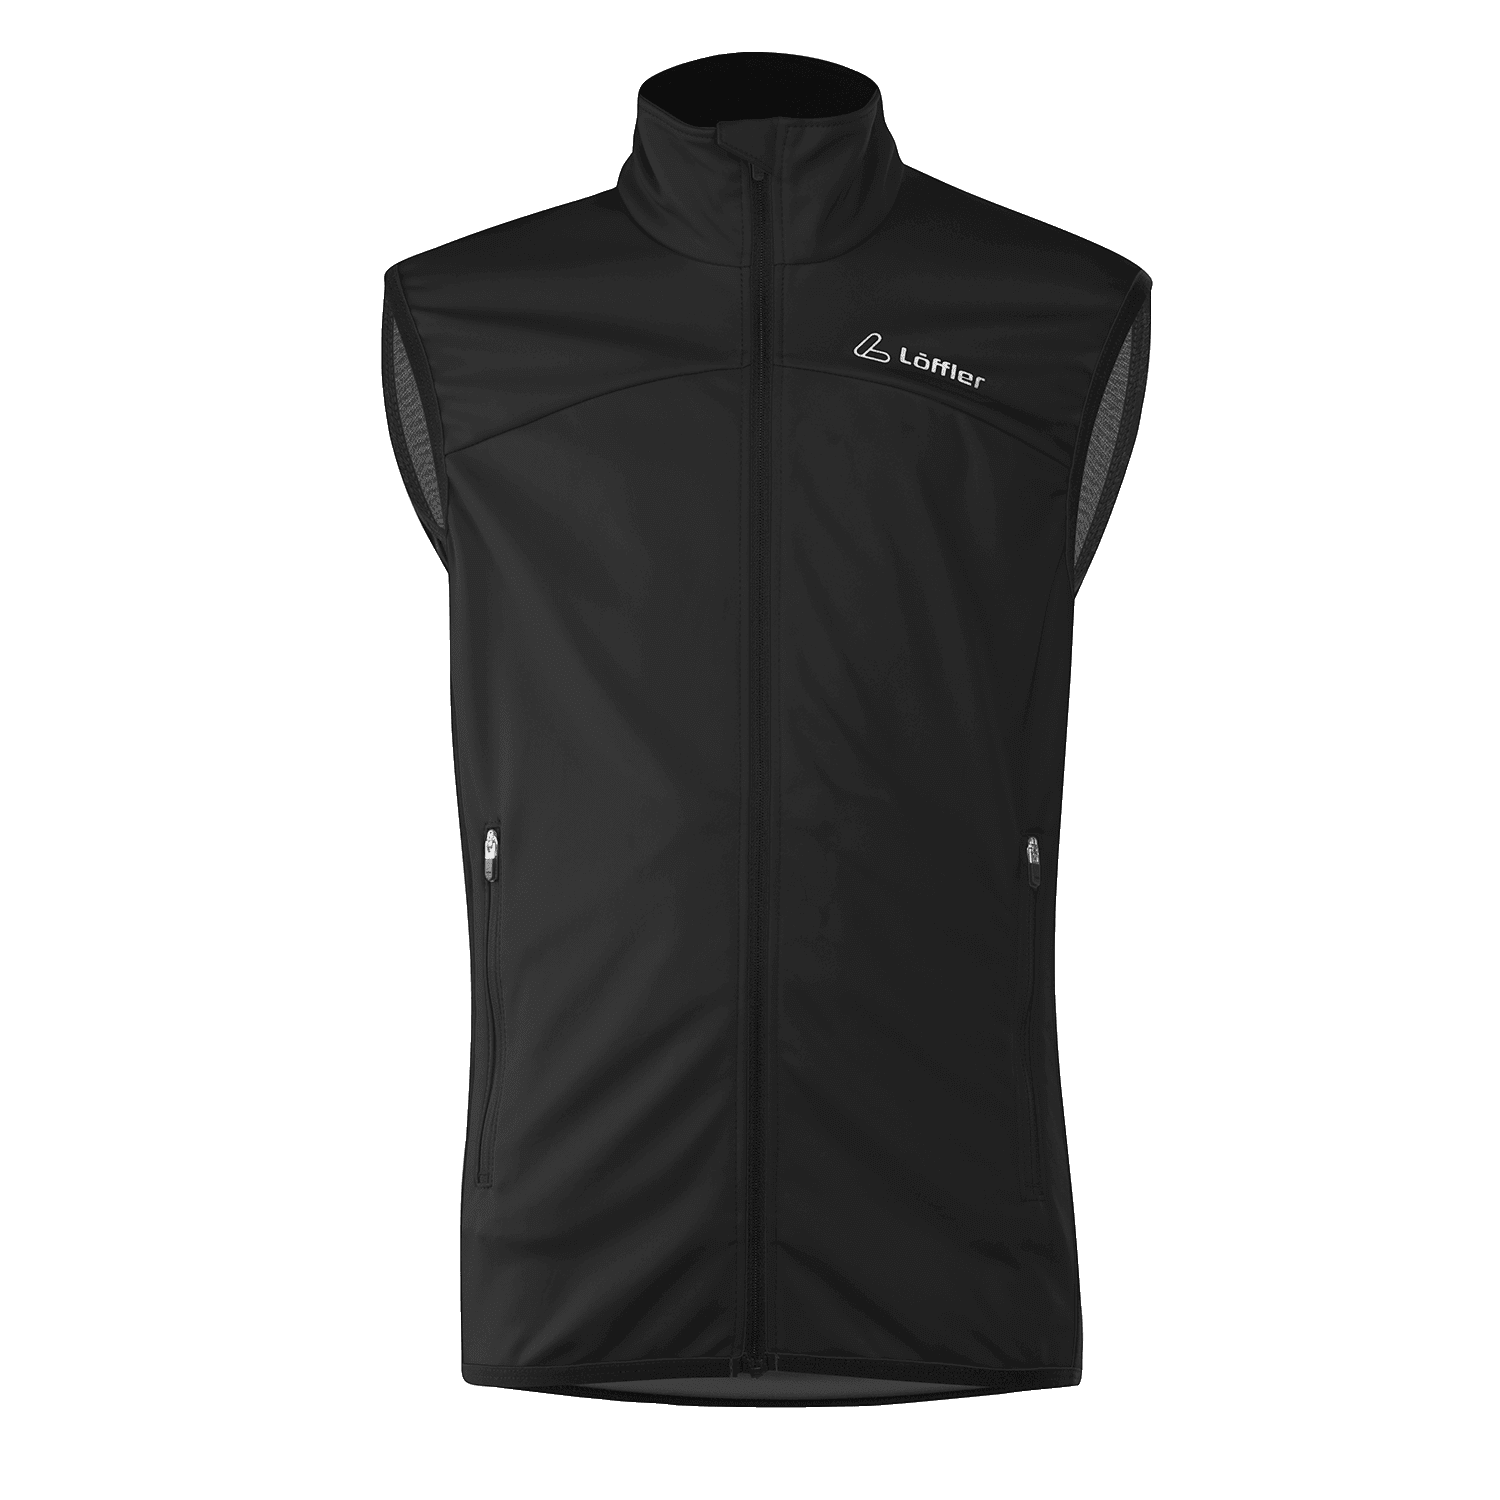 Löffler EVO WS LIGHT Softshell-Weste für Kinder